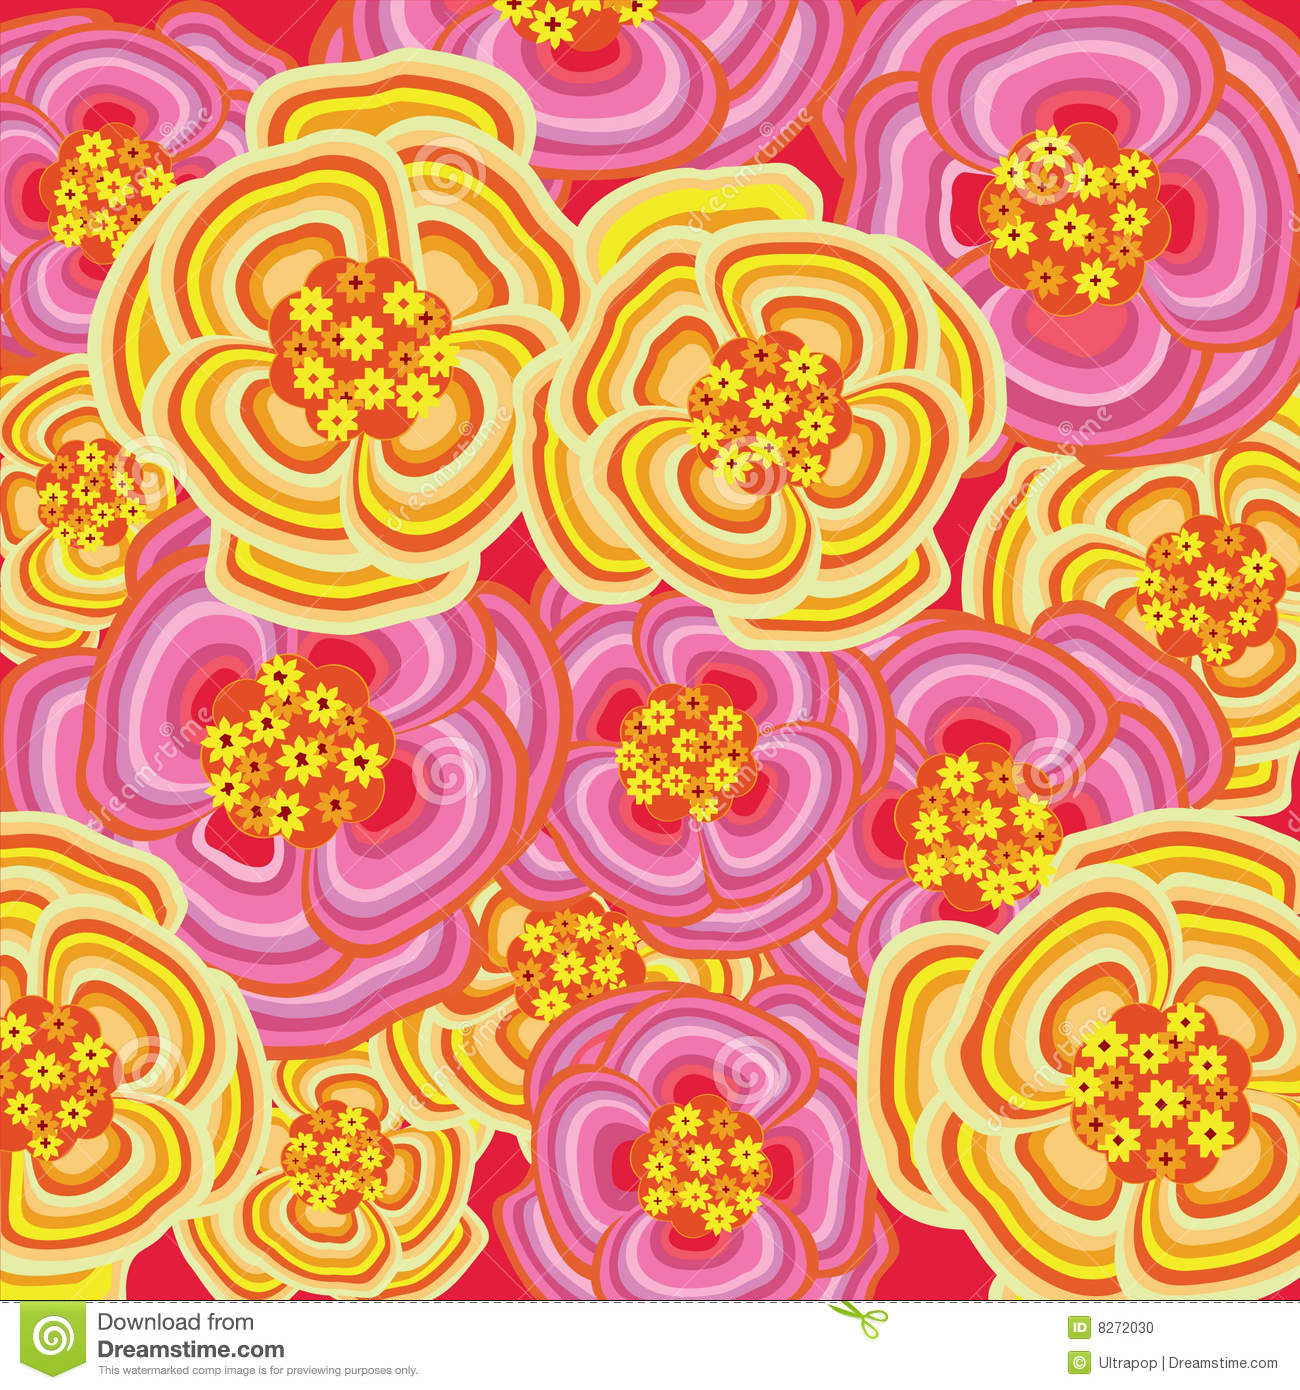 Blue Flower Burst Clipart Blue Flower Burst Clipart Pink